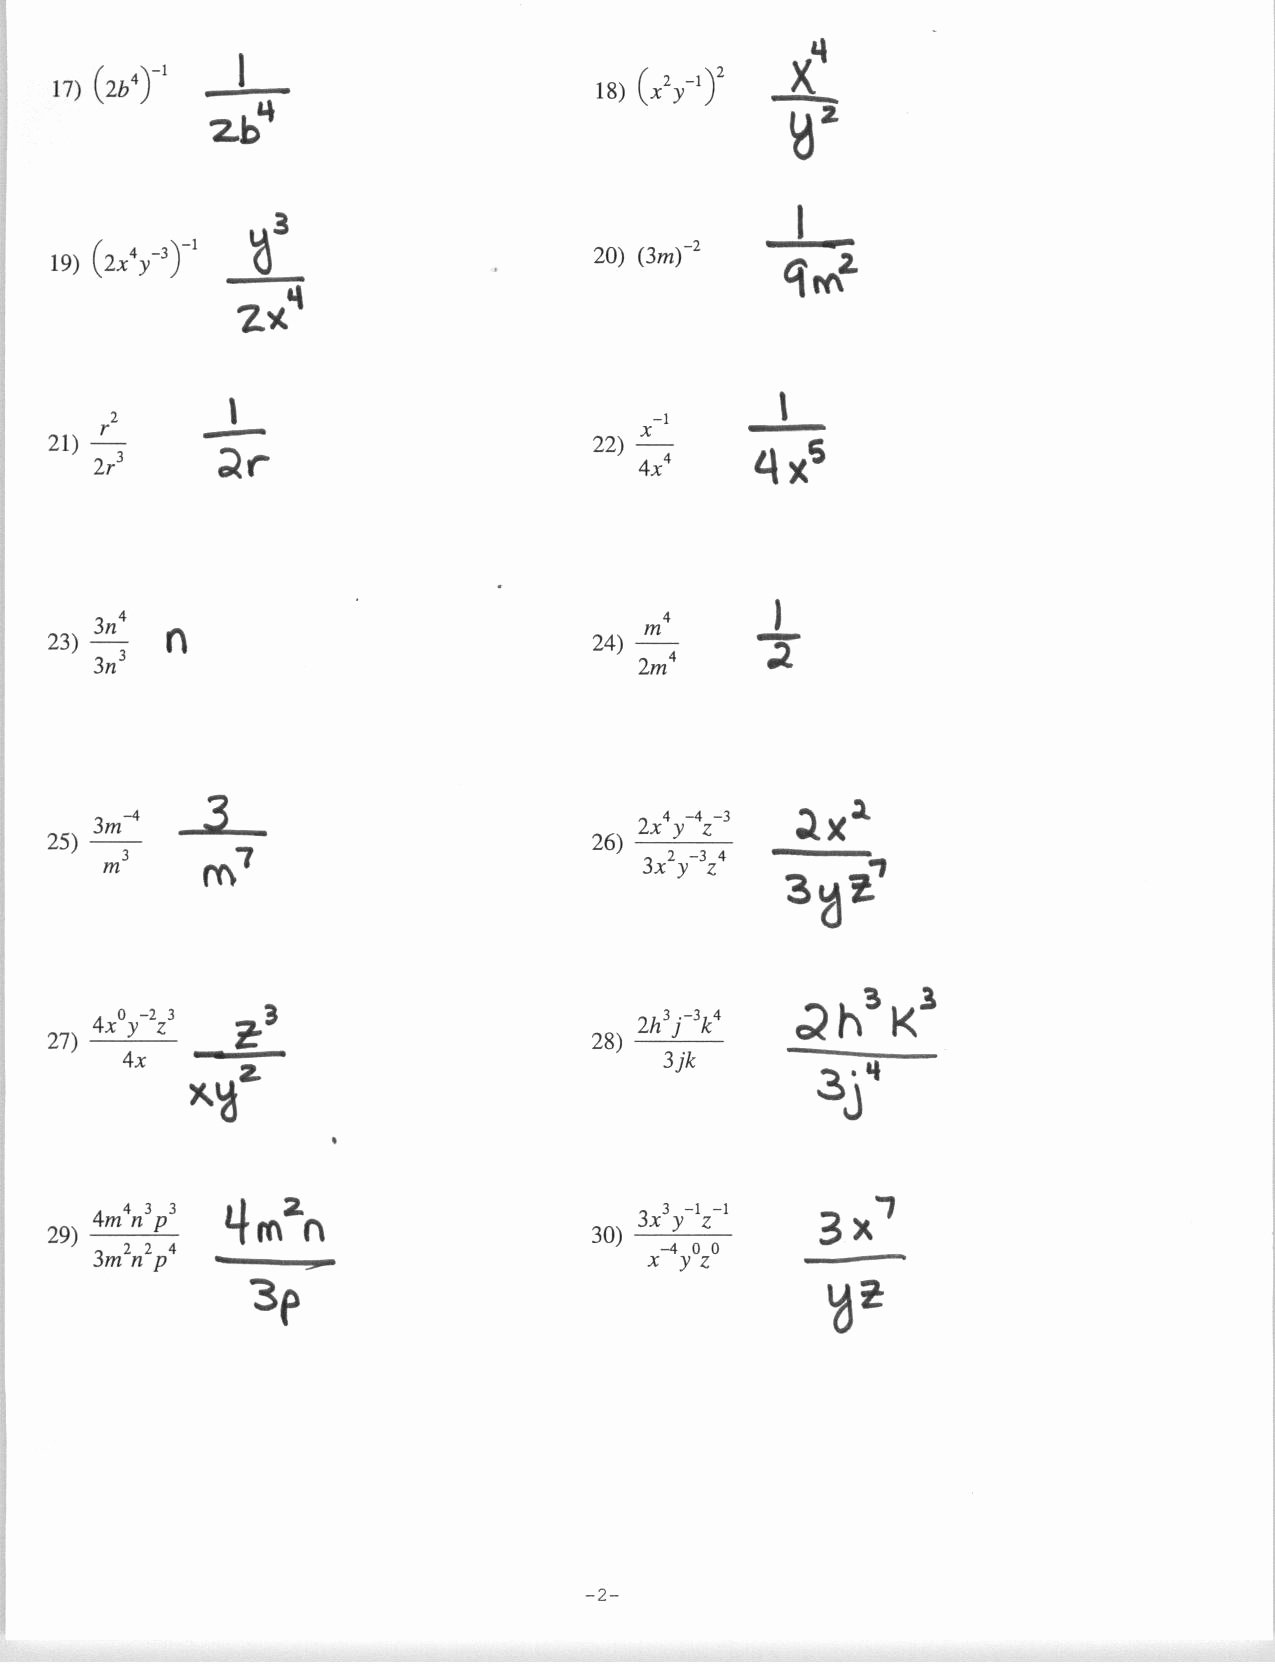 Simplifying Rational Expressions Worksheet Answers Unique 12 Best Of Rational Exponents Worksheets with